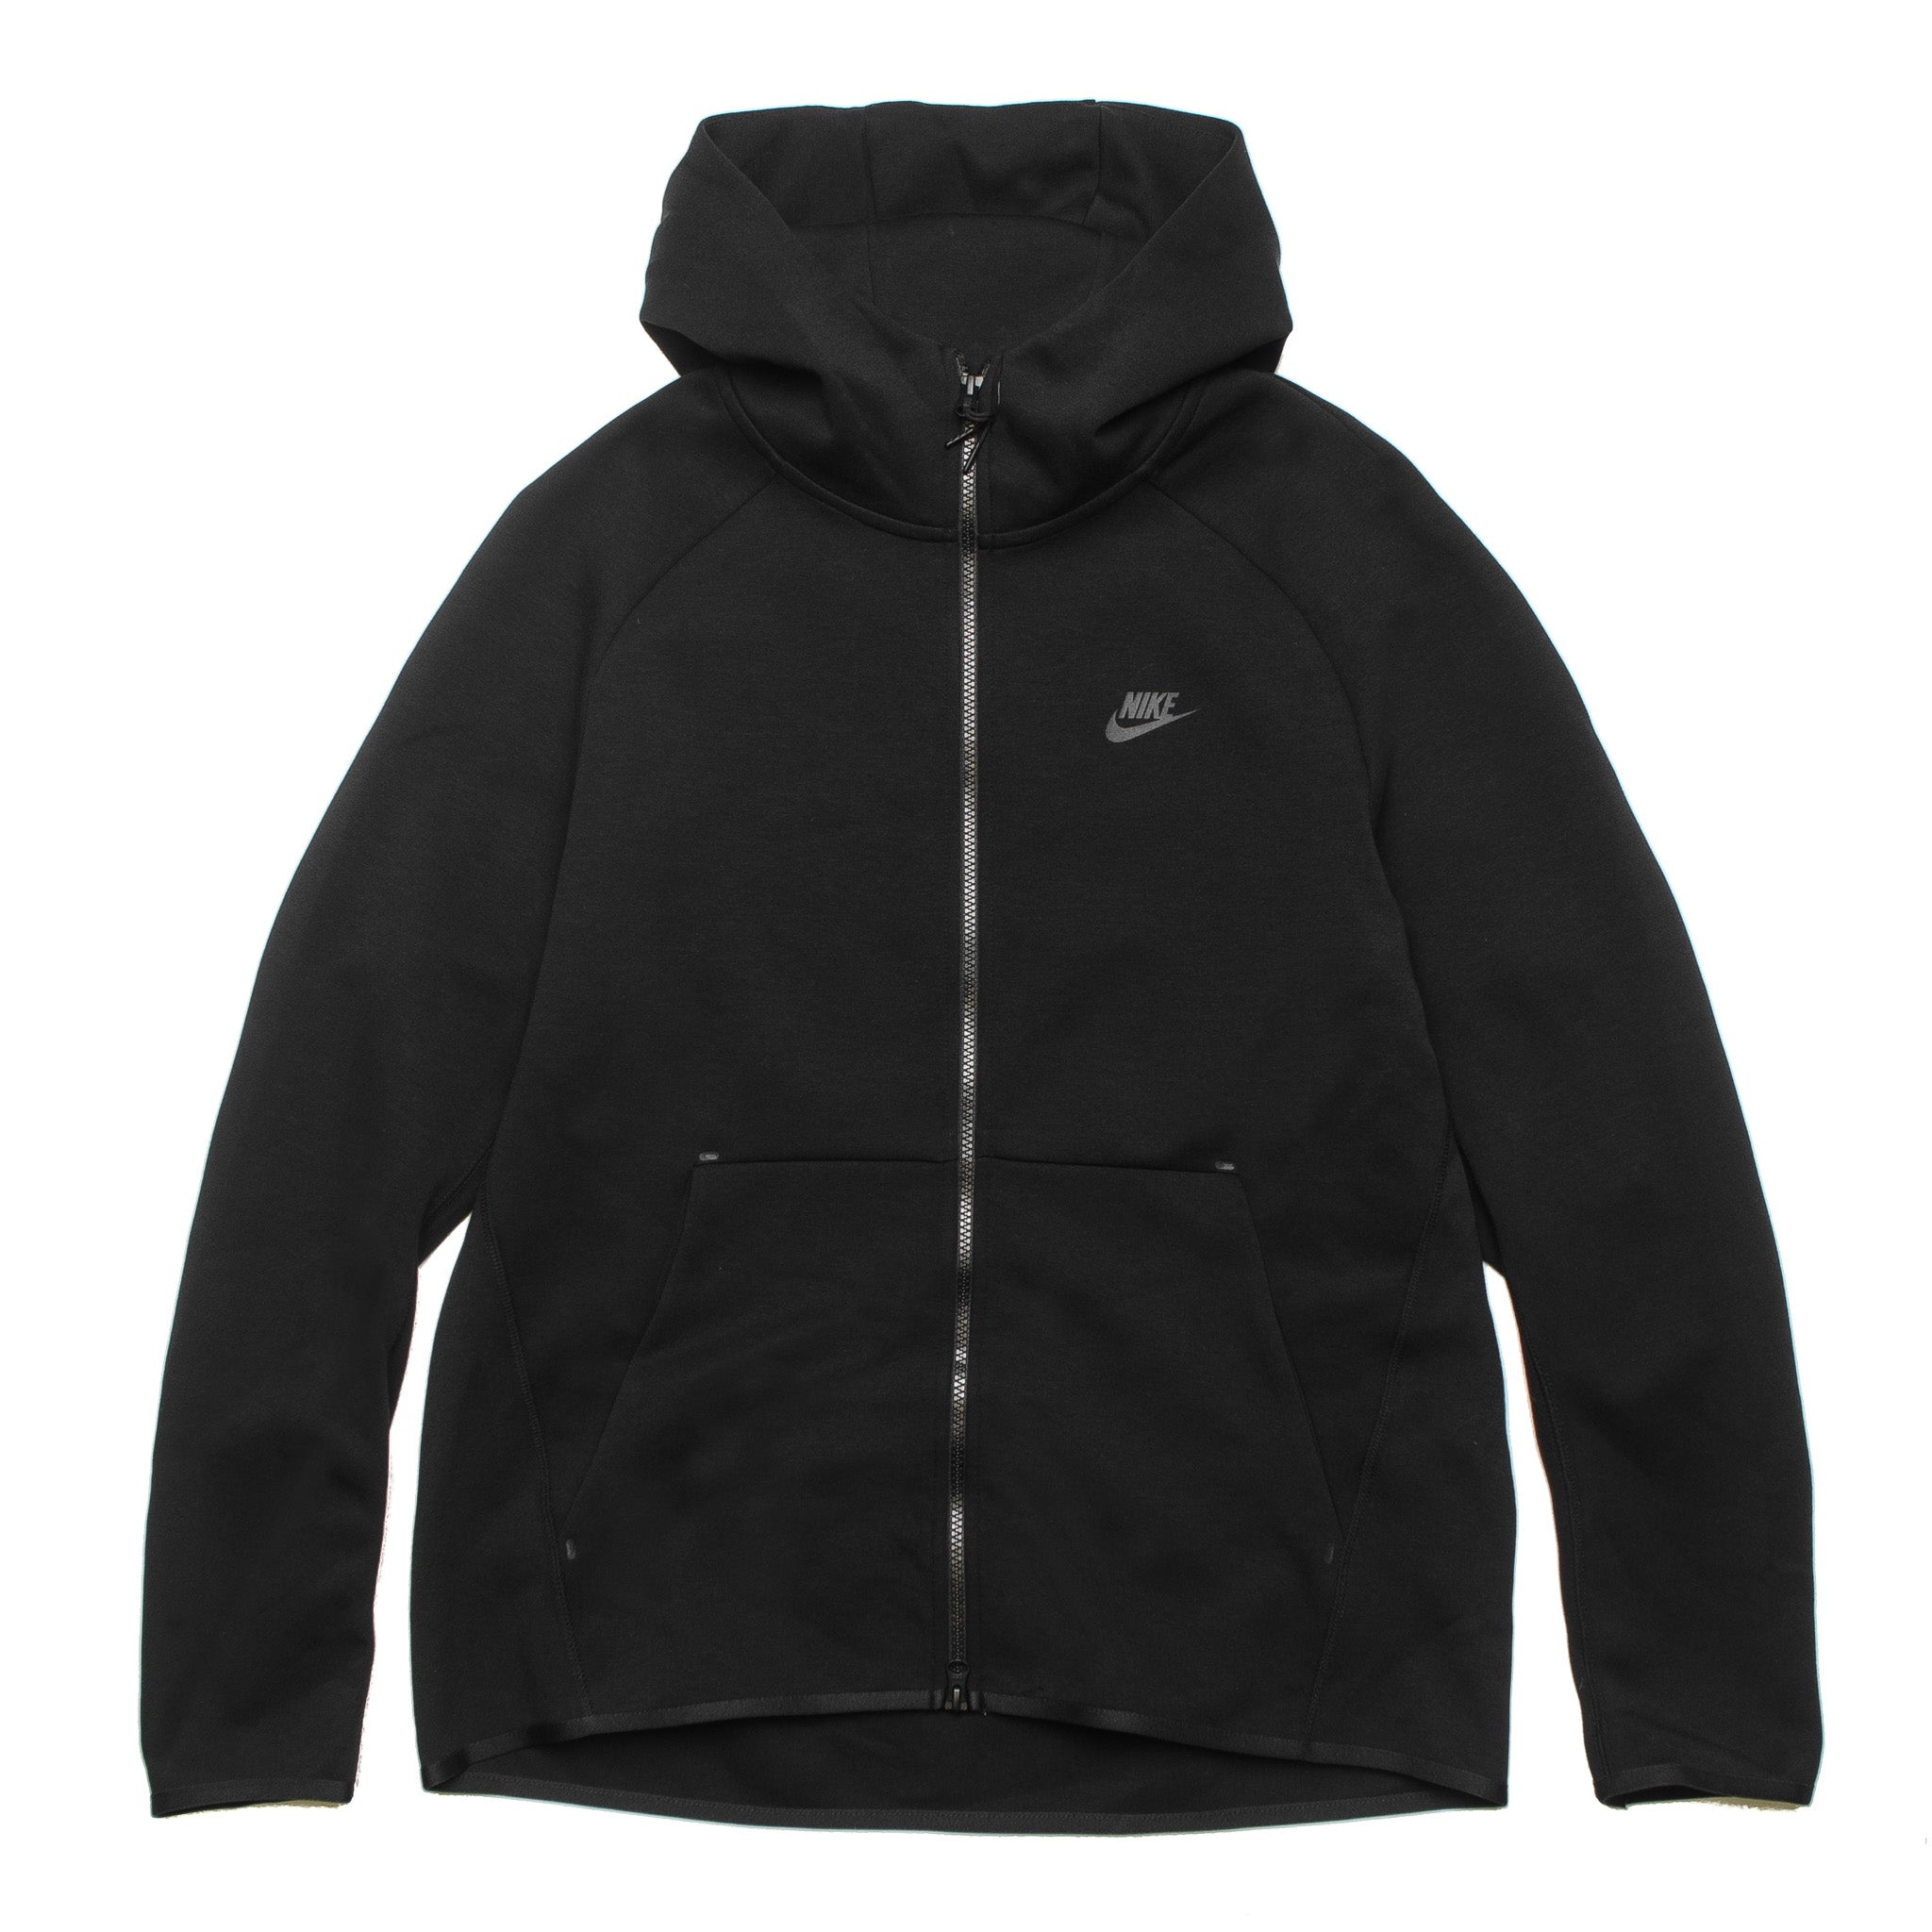 Tech Fleece Zip Hoodie 928483-010 Black